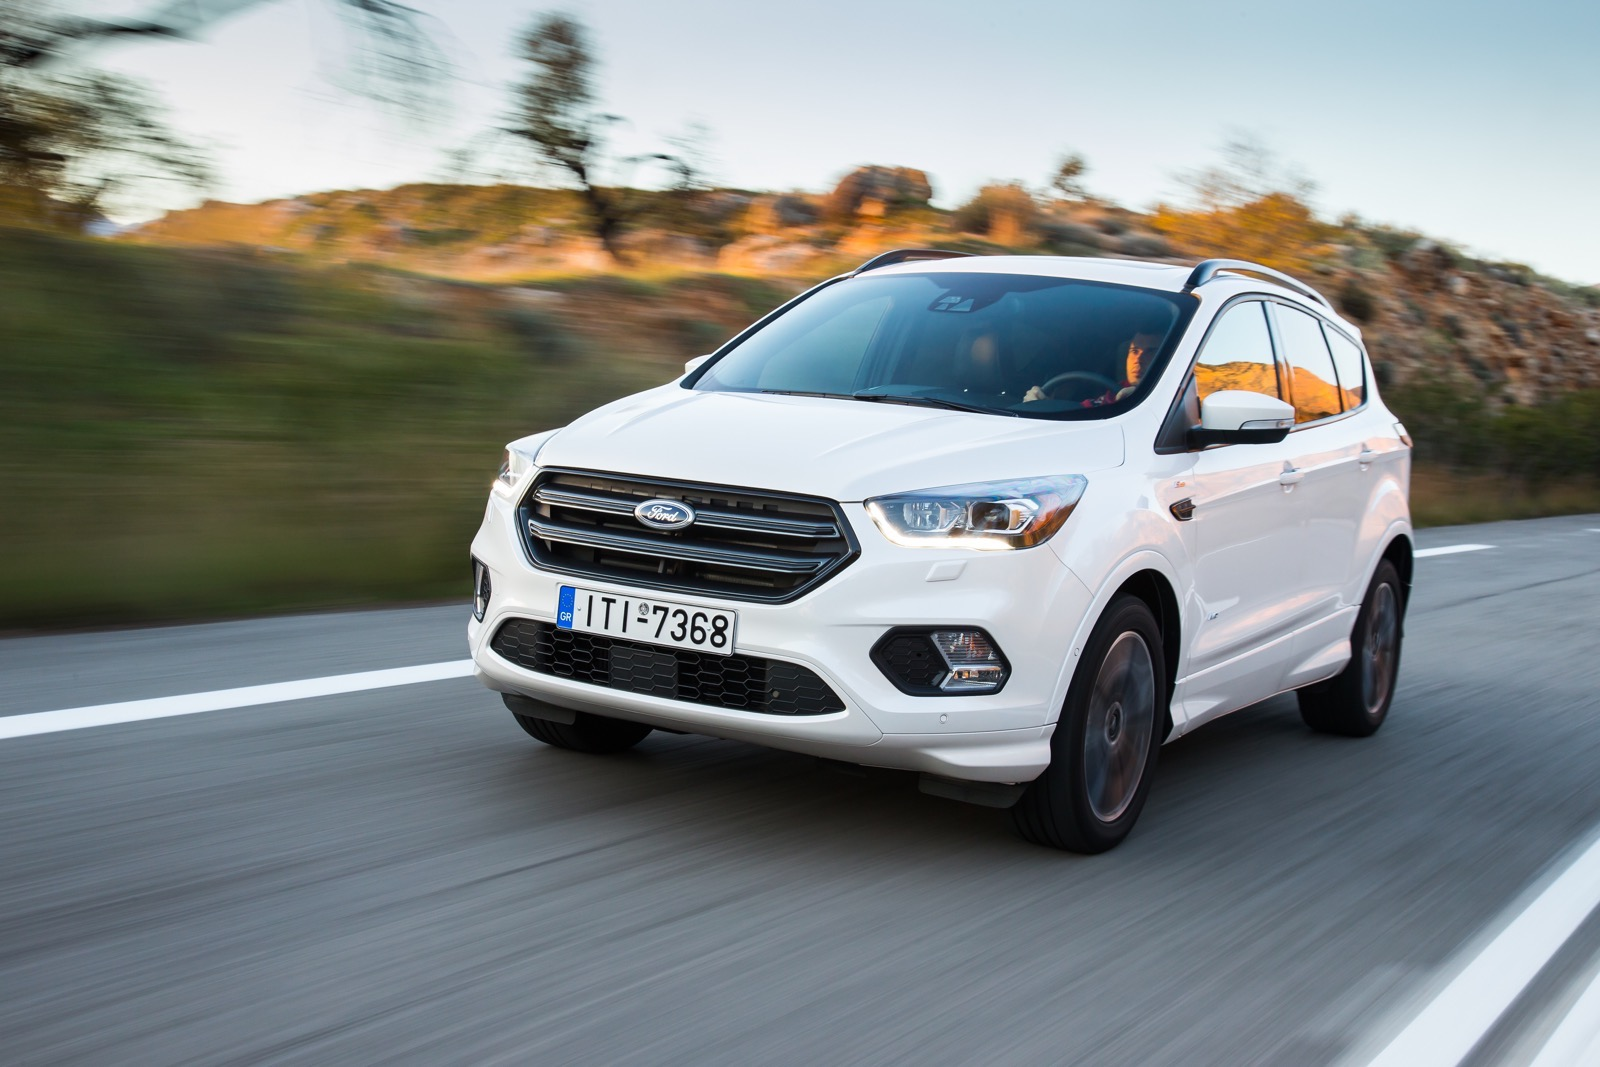 First_Drive_Ford_Kuga_86